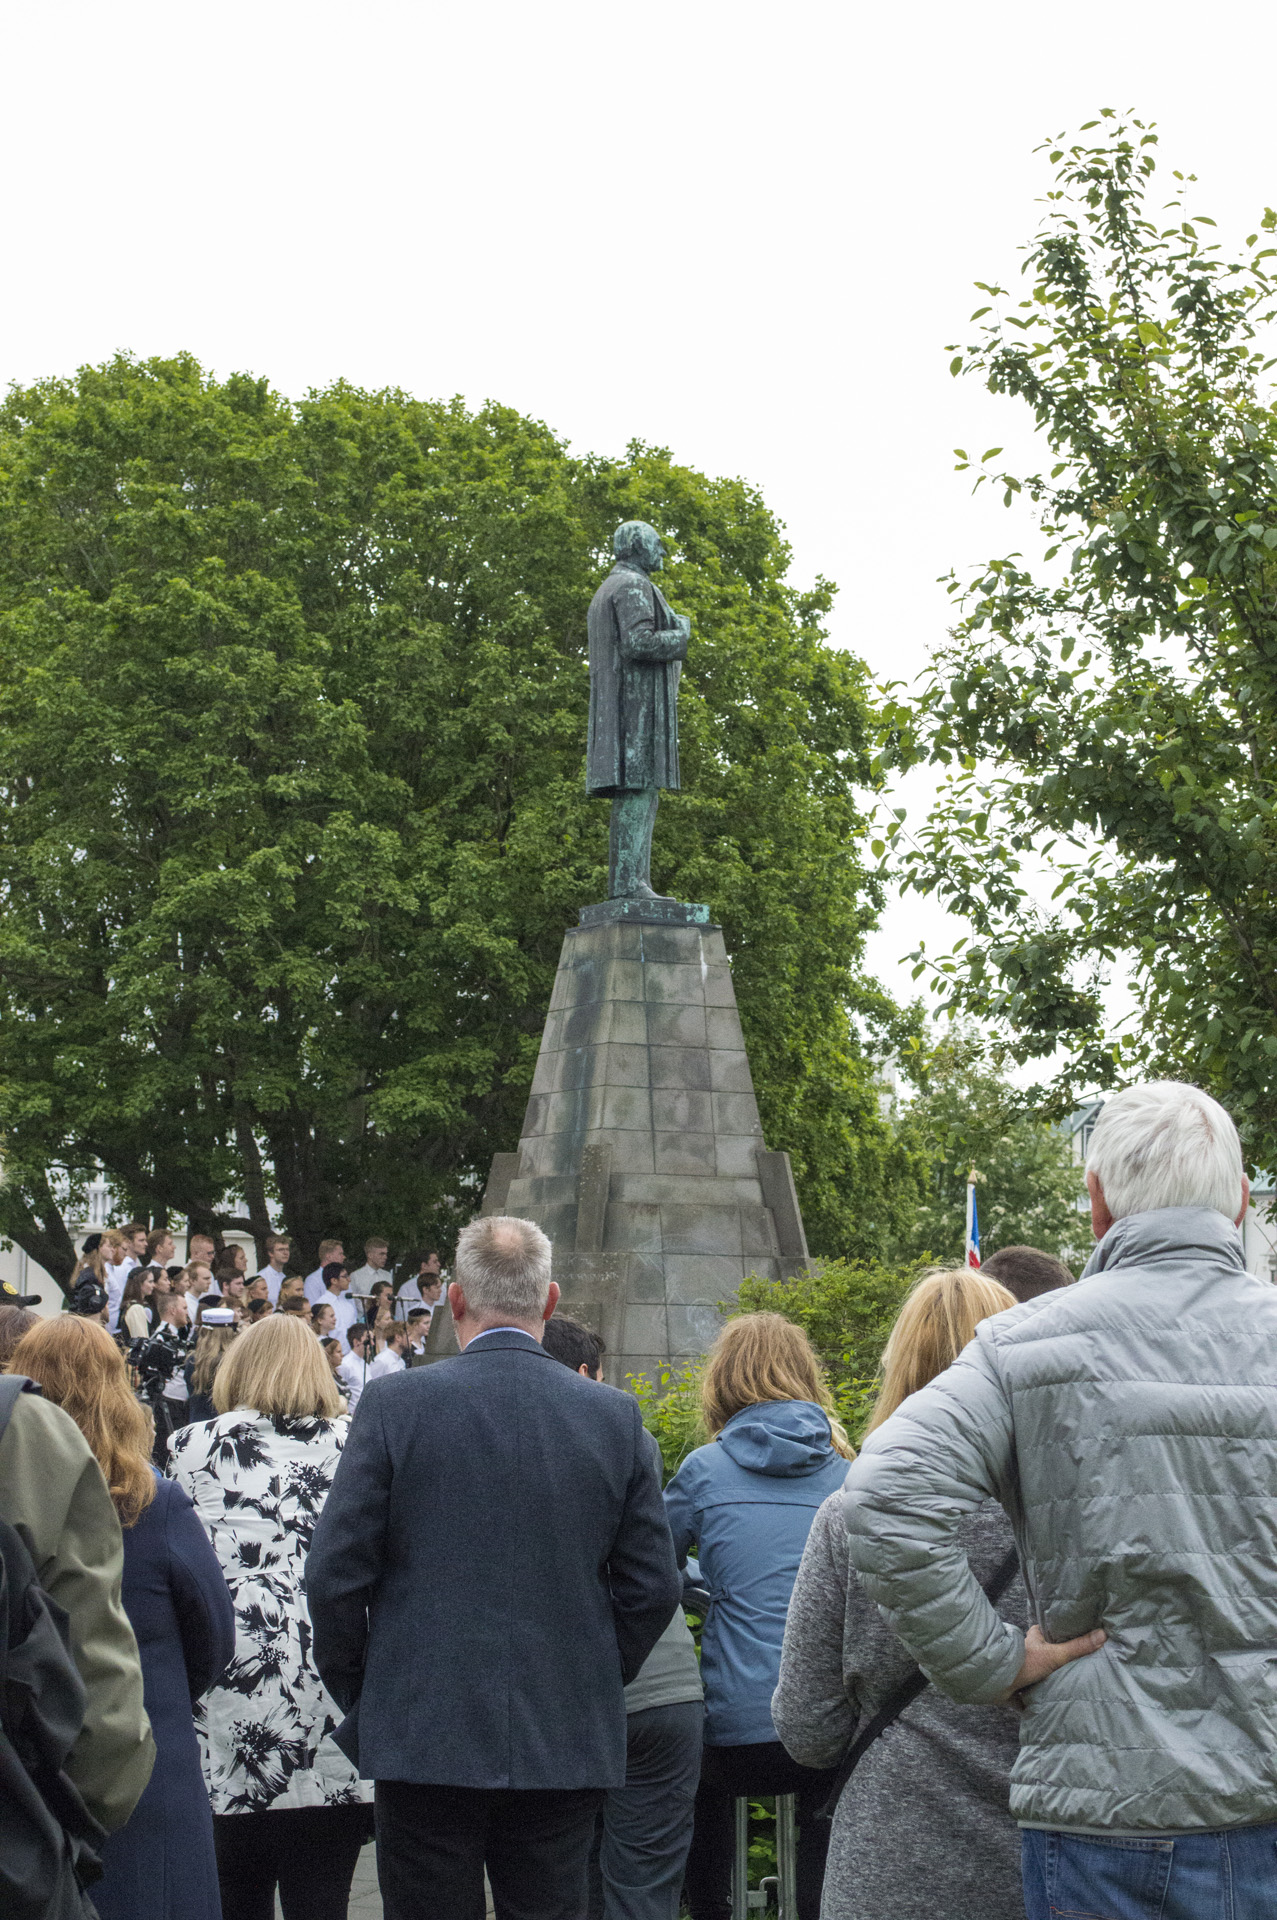 People gather to celebrate National Day in Austurvöllur, Reykjavík, Iceland. Above the crowd is a statue of Jón Sigurðsson, leader of Iceland´s independence movement.